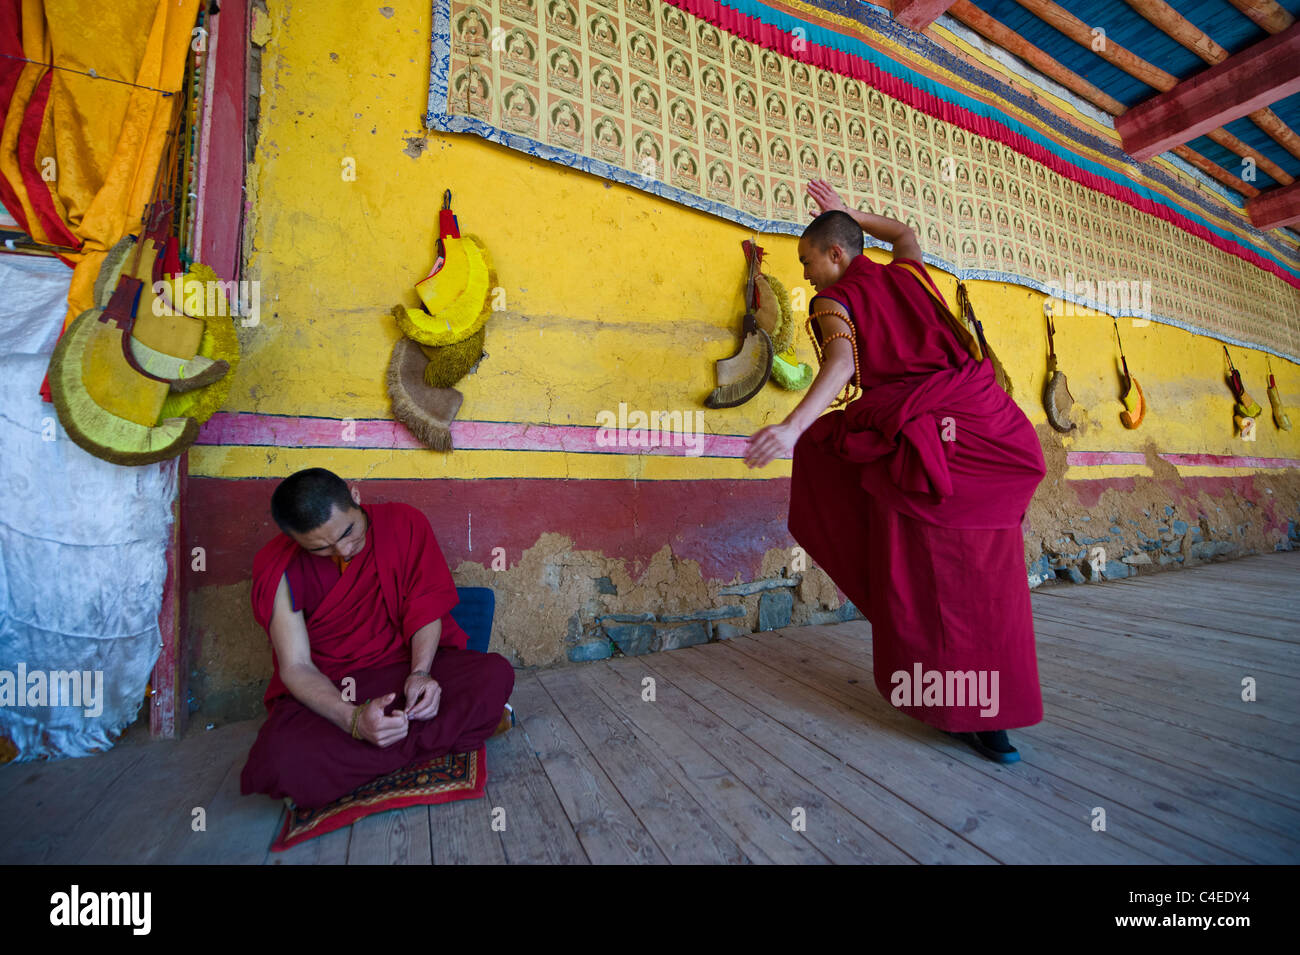 Philosophical debate, Ganzi monastery, Ganzi, Sichuan, China - Stock Image